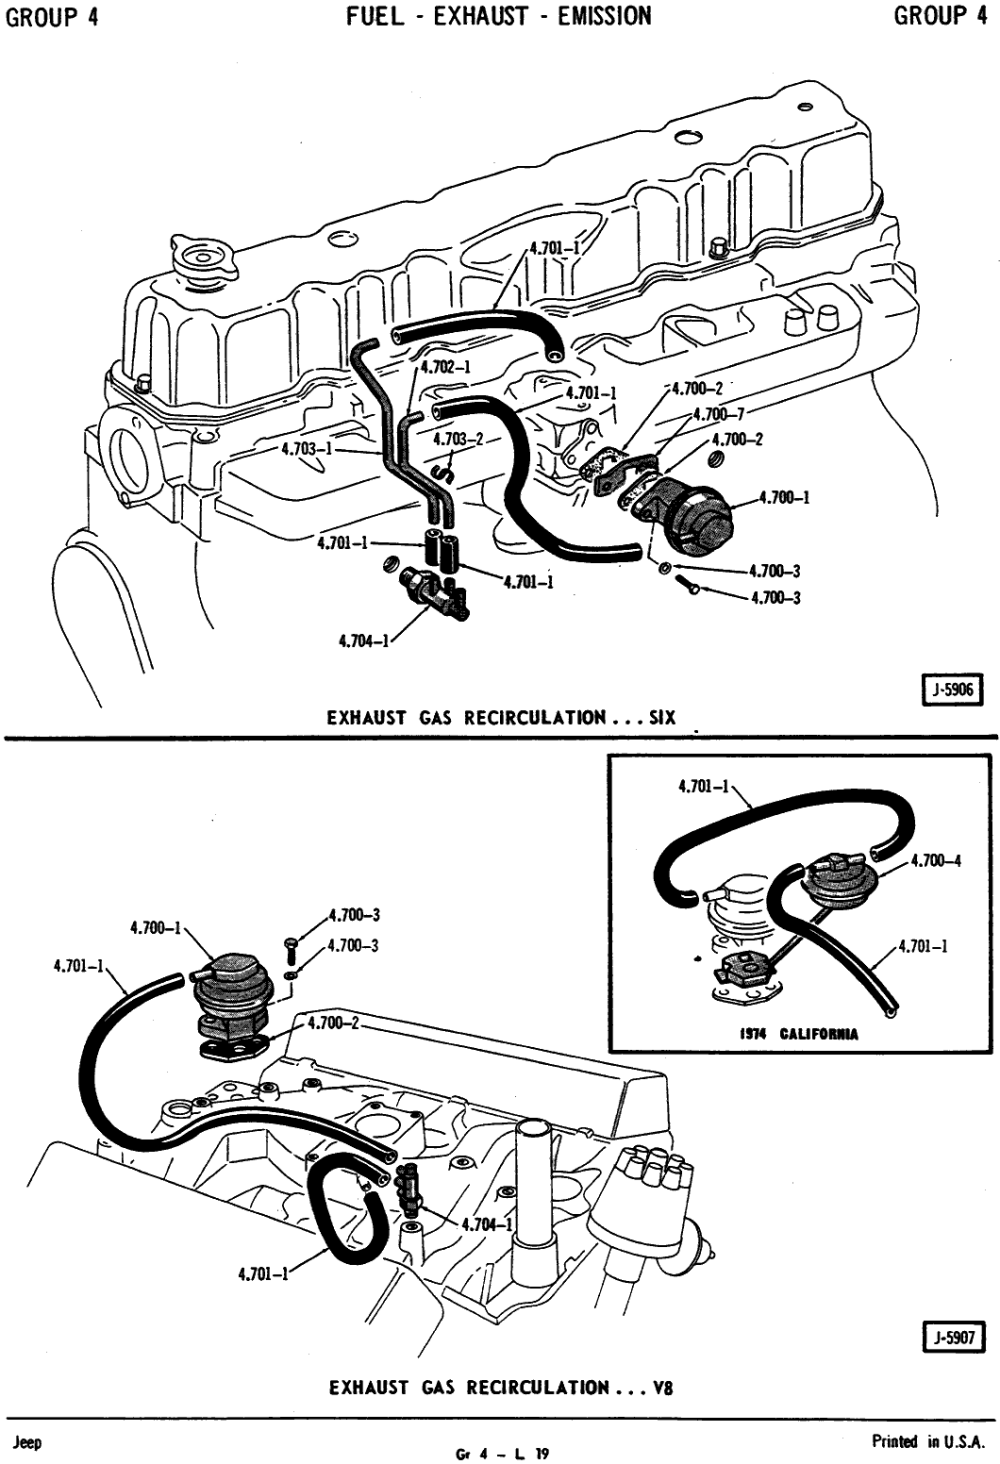 medium resolution of jeep 4 0 vacuum line diagram wiring diagram article 2004 jeep grand cherokee 4 0 vacuum line diagram